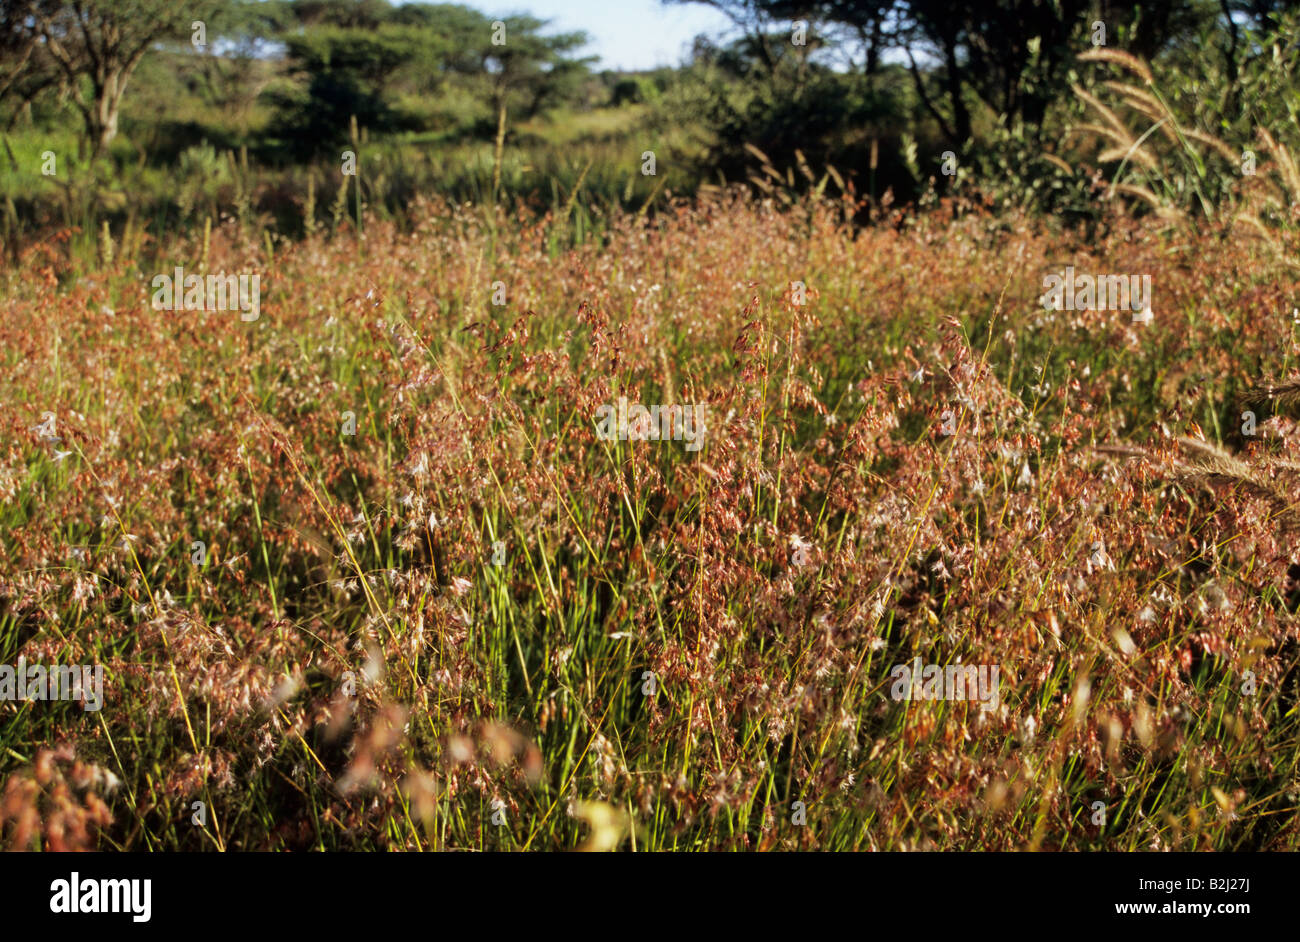 A collection of grasses in typical African bushveld - Stock Image